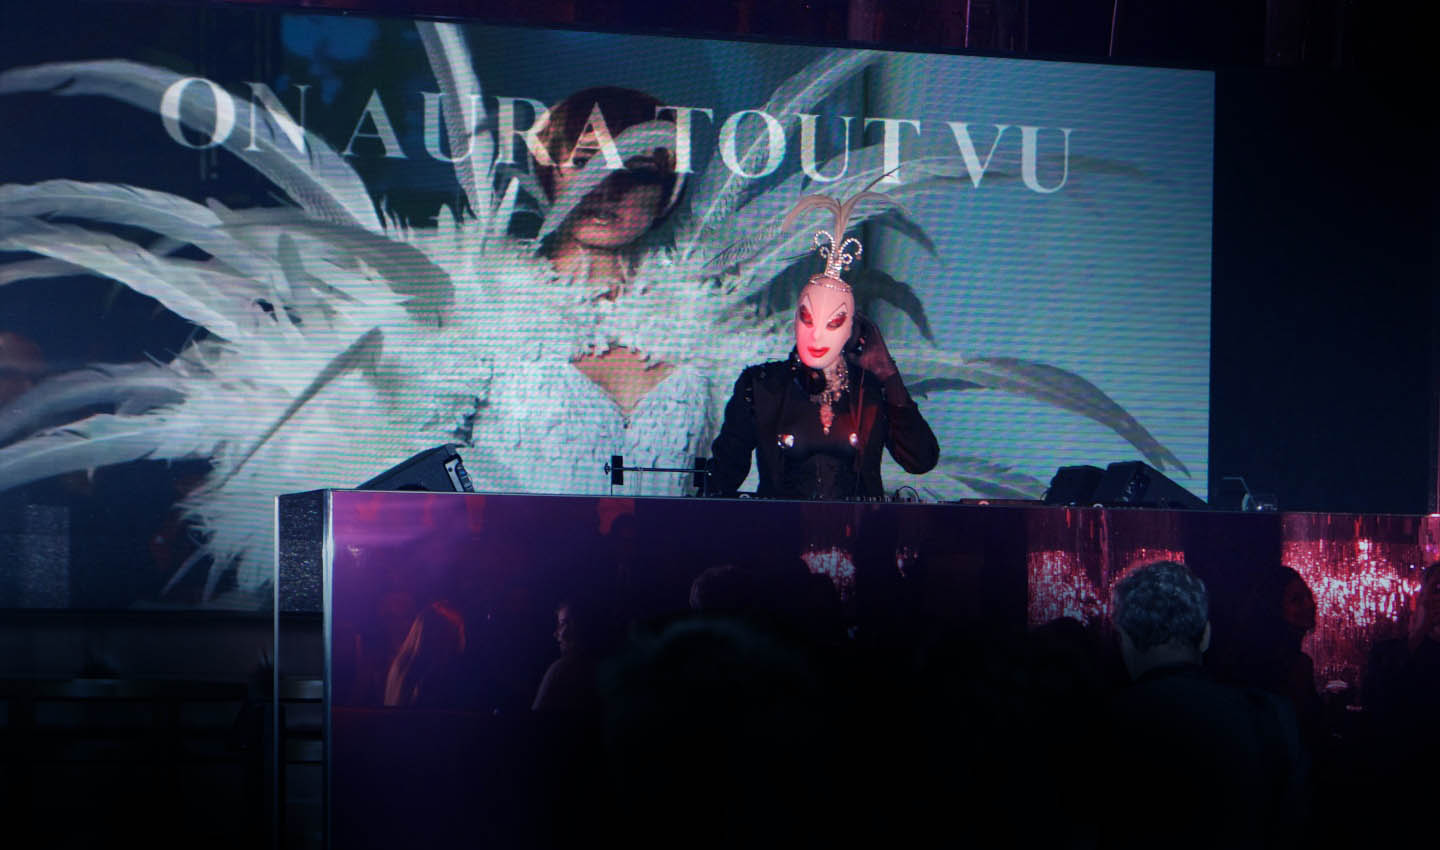 DJ corrine at Aftershow couture queen night club paris fashion week yassen samouilov livia stoianova